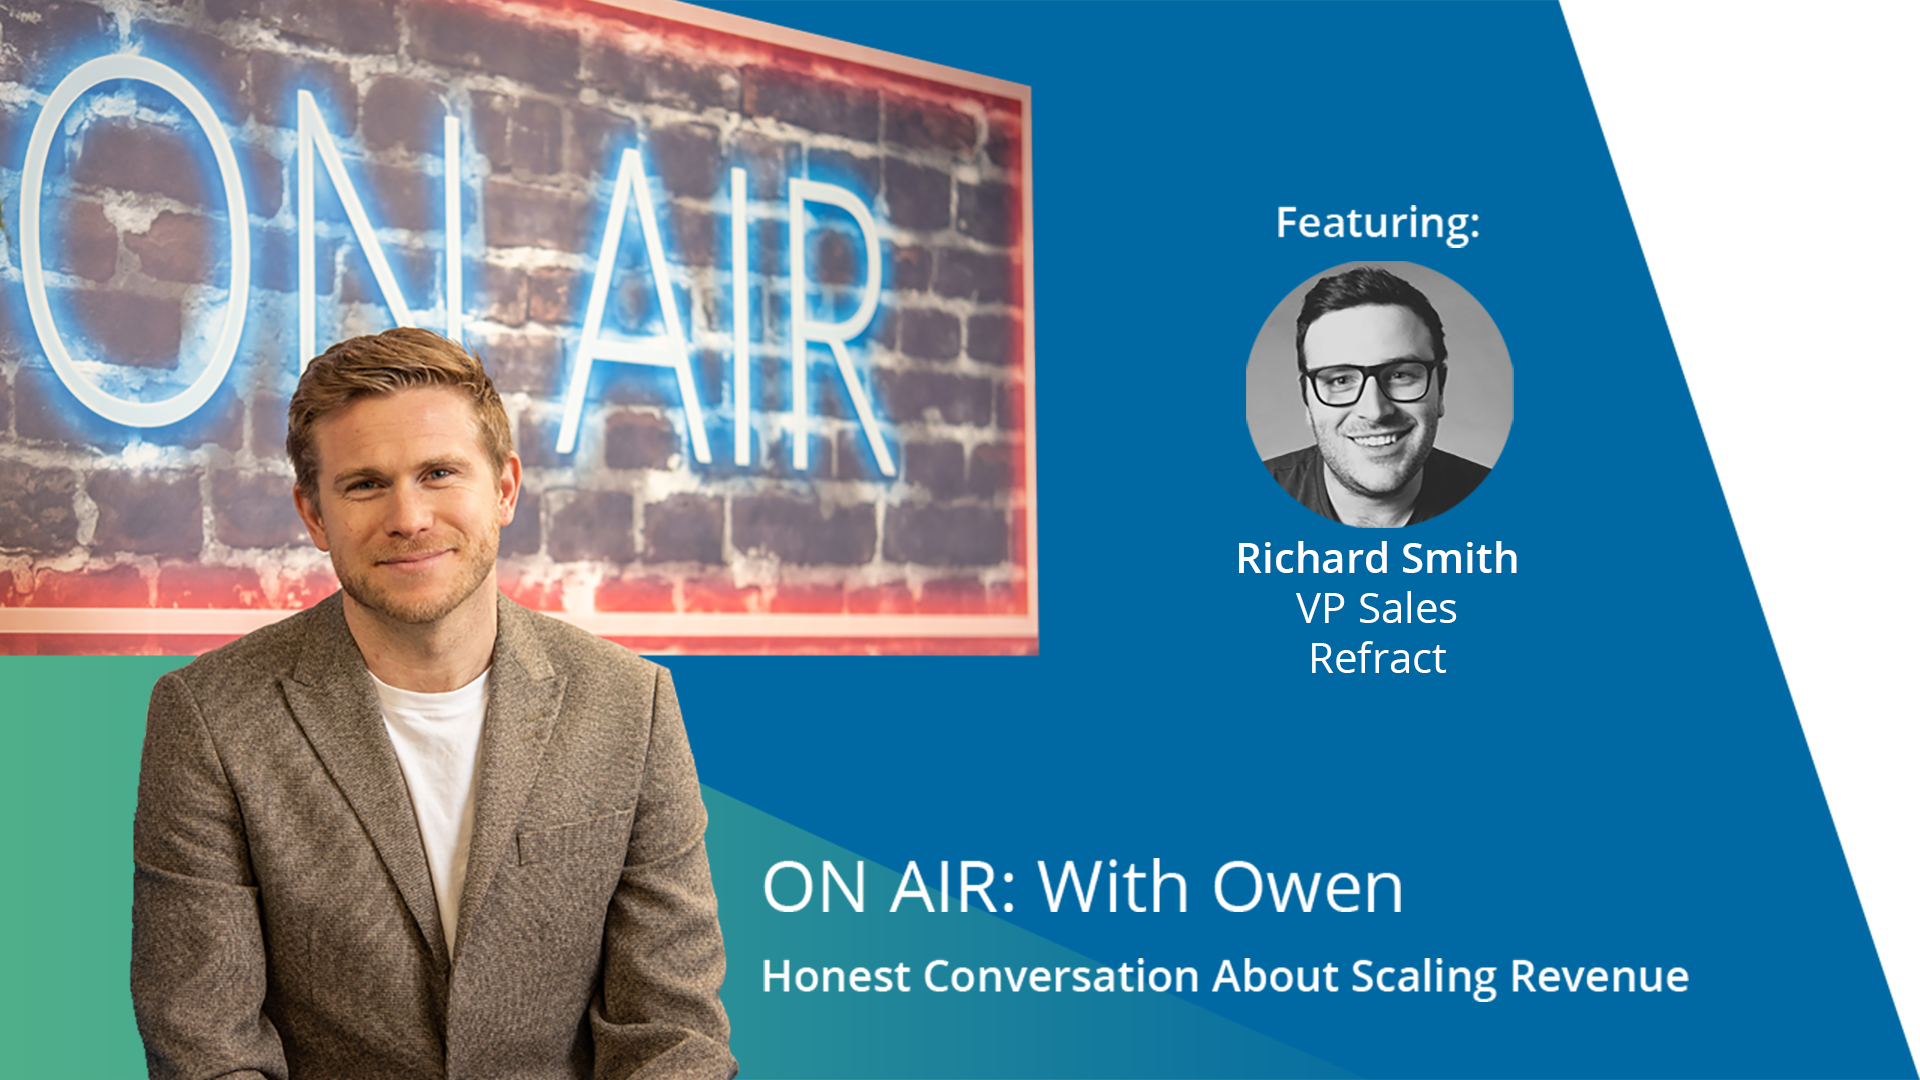 ON AIR: With Owen Featuring Richard Smith – VP Sales, Refract